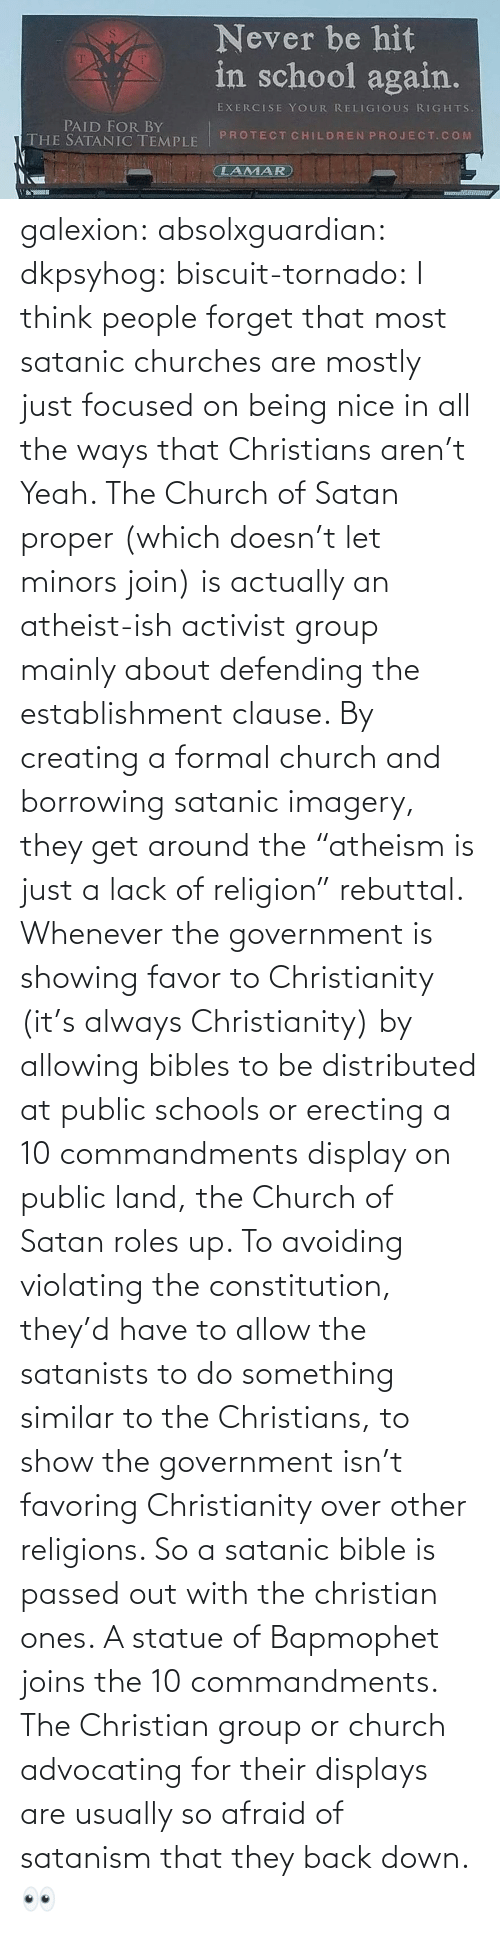 "group: galexion:  absolxguardian:  dkpsyhog:  biscuit-tornado:     I think people forget that most satanic churches are mostly just focused on being nice in all the ways that Christians aren't  Yeah. The Church of Satan proper (which doesn't let minors join) is actually an atheist-ish activist group mainly about defending the establishment clause. By creating a formal church and borrowing satanic imagery, they get around the ""atheism is just a lack of religion"" rebuttal. Whenever the government is showing favor to Christianity (it's always Christianity) by allowing bibles to be distributed at public schools or erecting a 10 commandments display on public land, the Church of Satan roles up. To avoiding violating the constitution, they'd have to allow the satanists to do something similar to the Christians, to show the government isn't favoring Christianity over other religions. So a satanic bible is passed out with the christian ones. A statue of Bapmophet joins the 10 commandments. The Christian group or church advocating for their displays are usually so afraid of satanism that they back down.   👀"